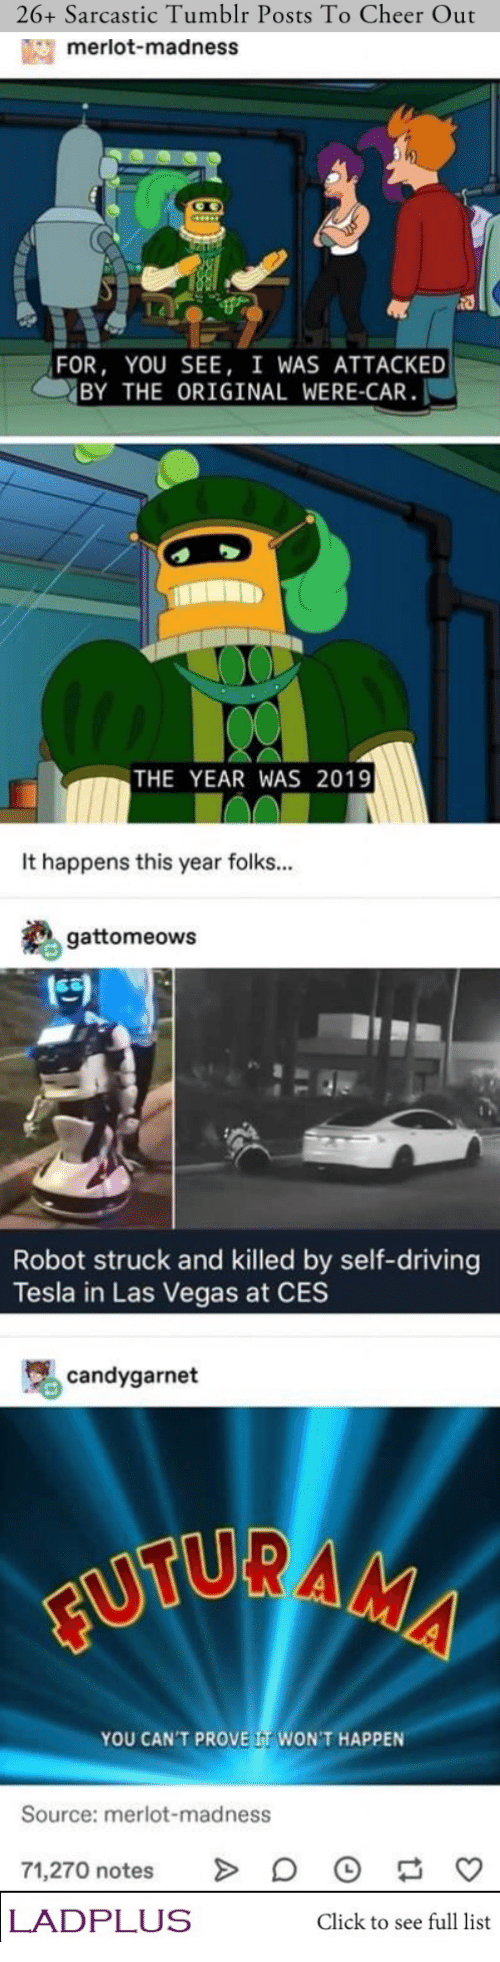 Las Vegas: 26+ Sarcastic Tumblr Posts To Cheer Out  merlot-madness  FOR, YOU SEE, I WAS ATTACKED  BY THE ORIGINAL WERE-CAR  THE YEAR WAS 2019  It happens this year folks...  gattomeows  Robot struck and killed by self-driving  Tesla in Las Vegas at CES  candygarnet  FUTURAMA  YOU CAN'T PROVE IT WON'T HAPPEN  Source: merlot-madness  71,270 notes  LADPLUS  Click to see full list